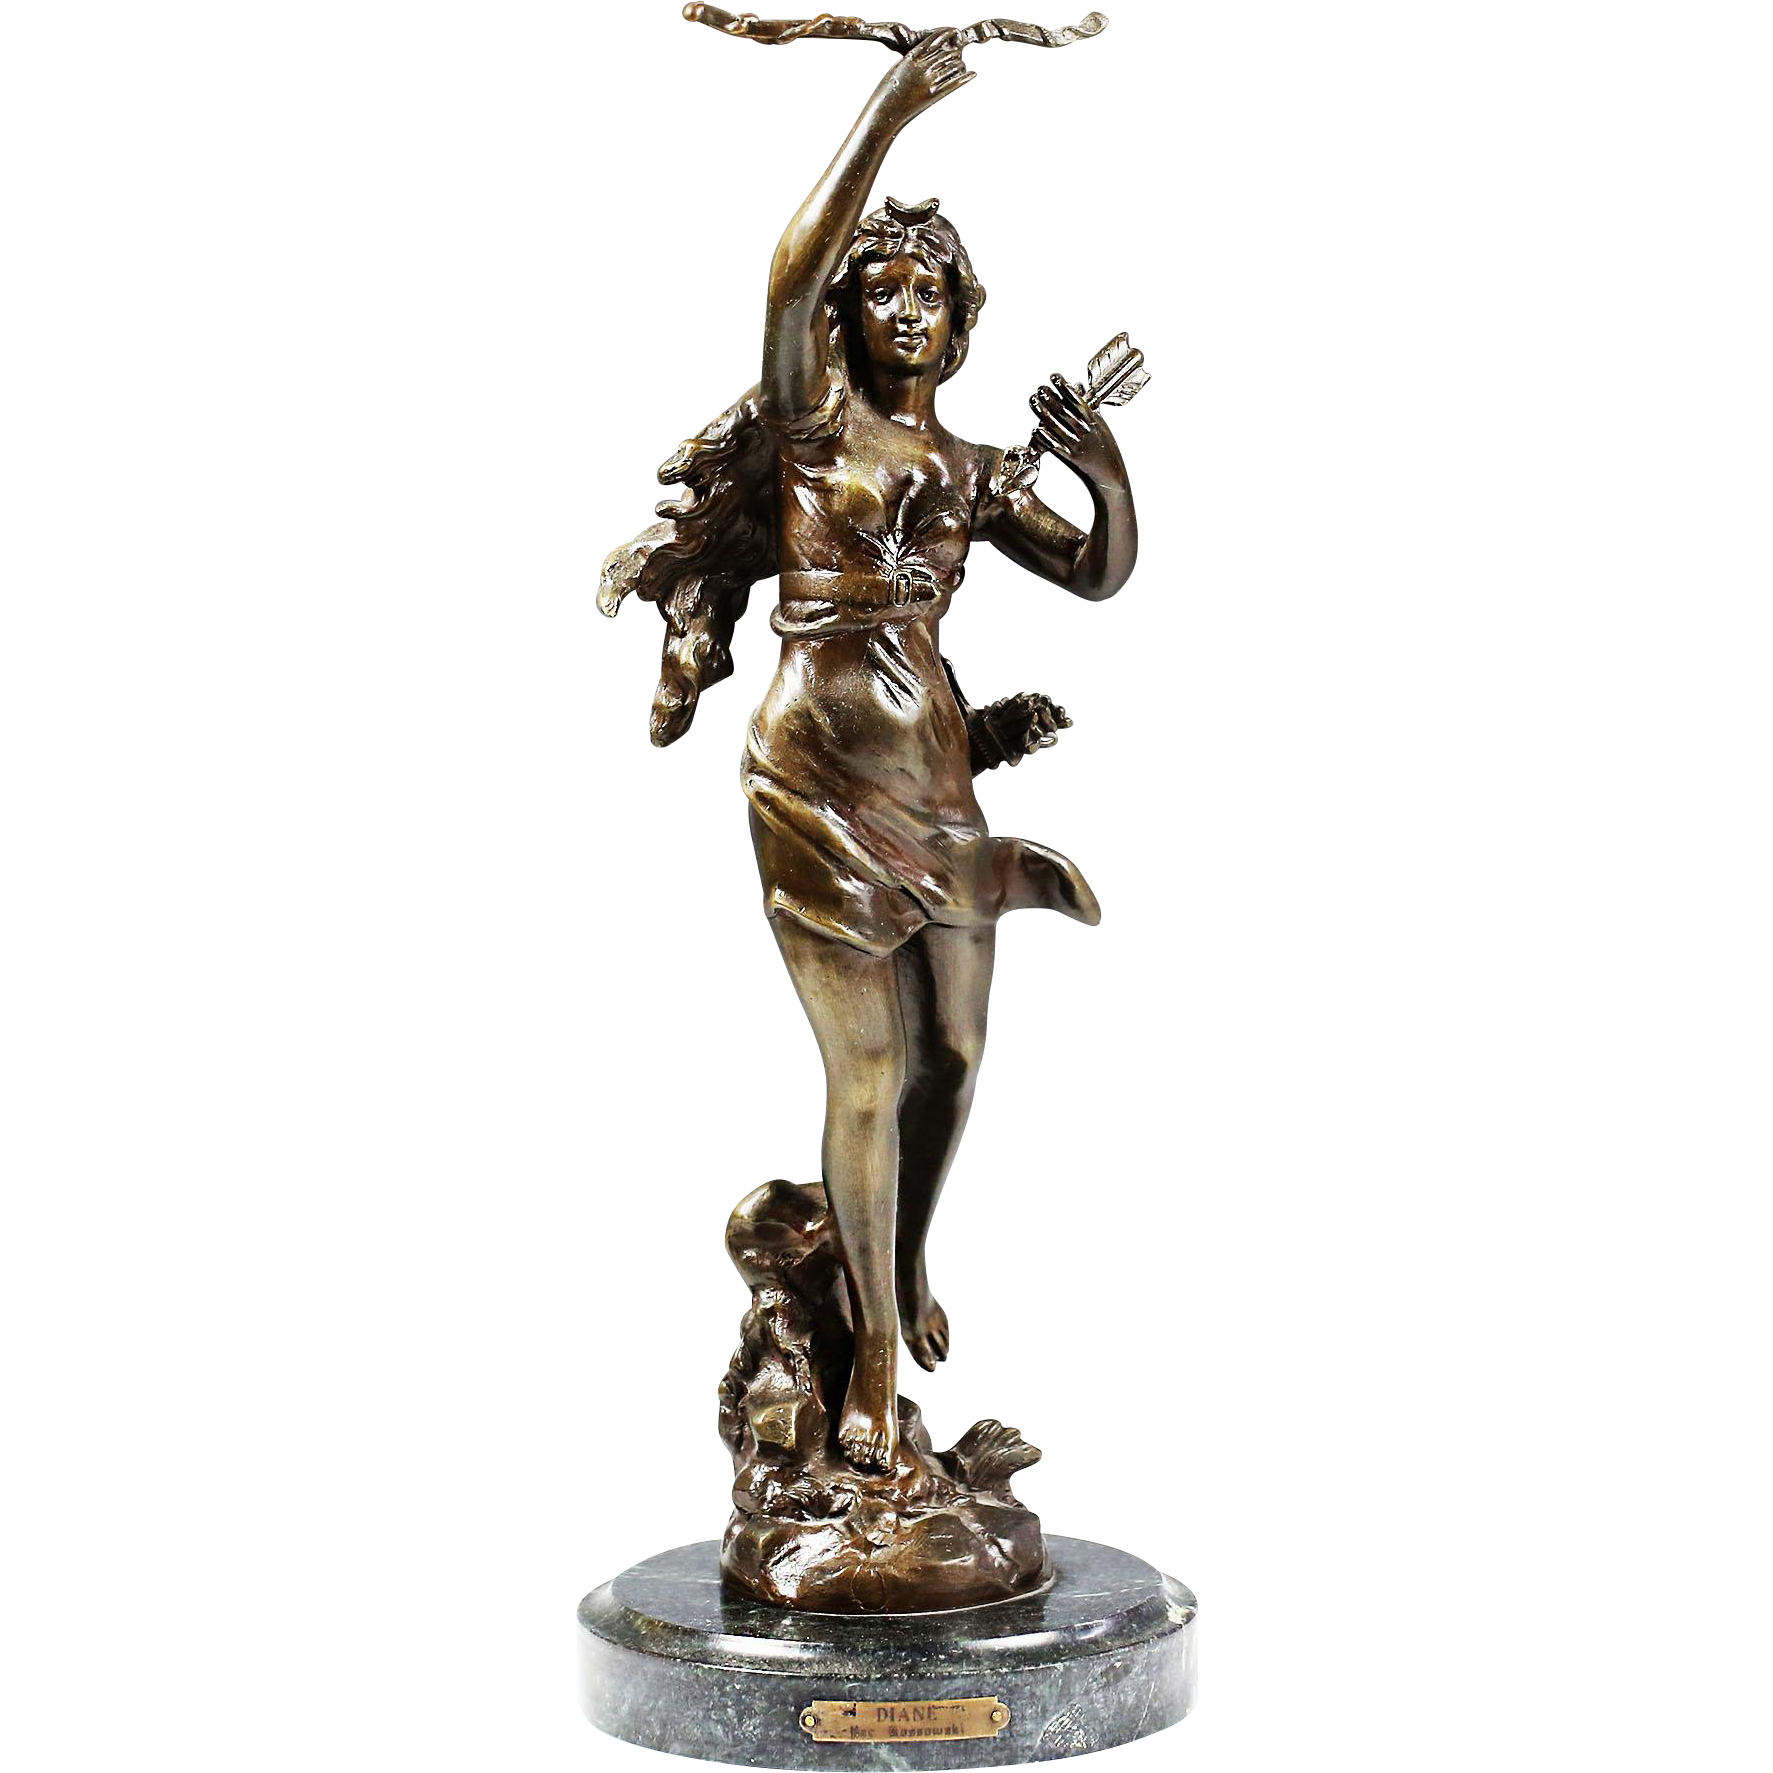 Diety statue png. Large bronze figurine diana